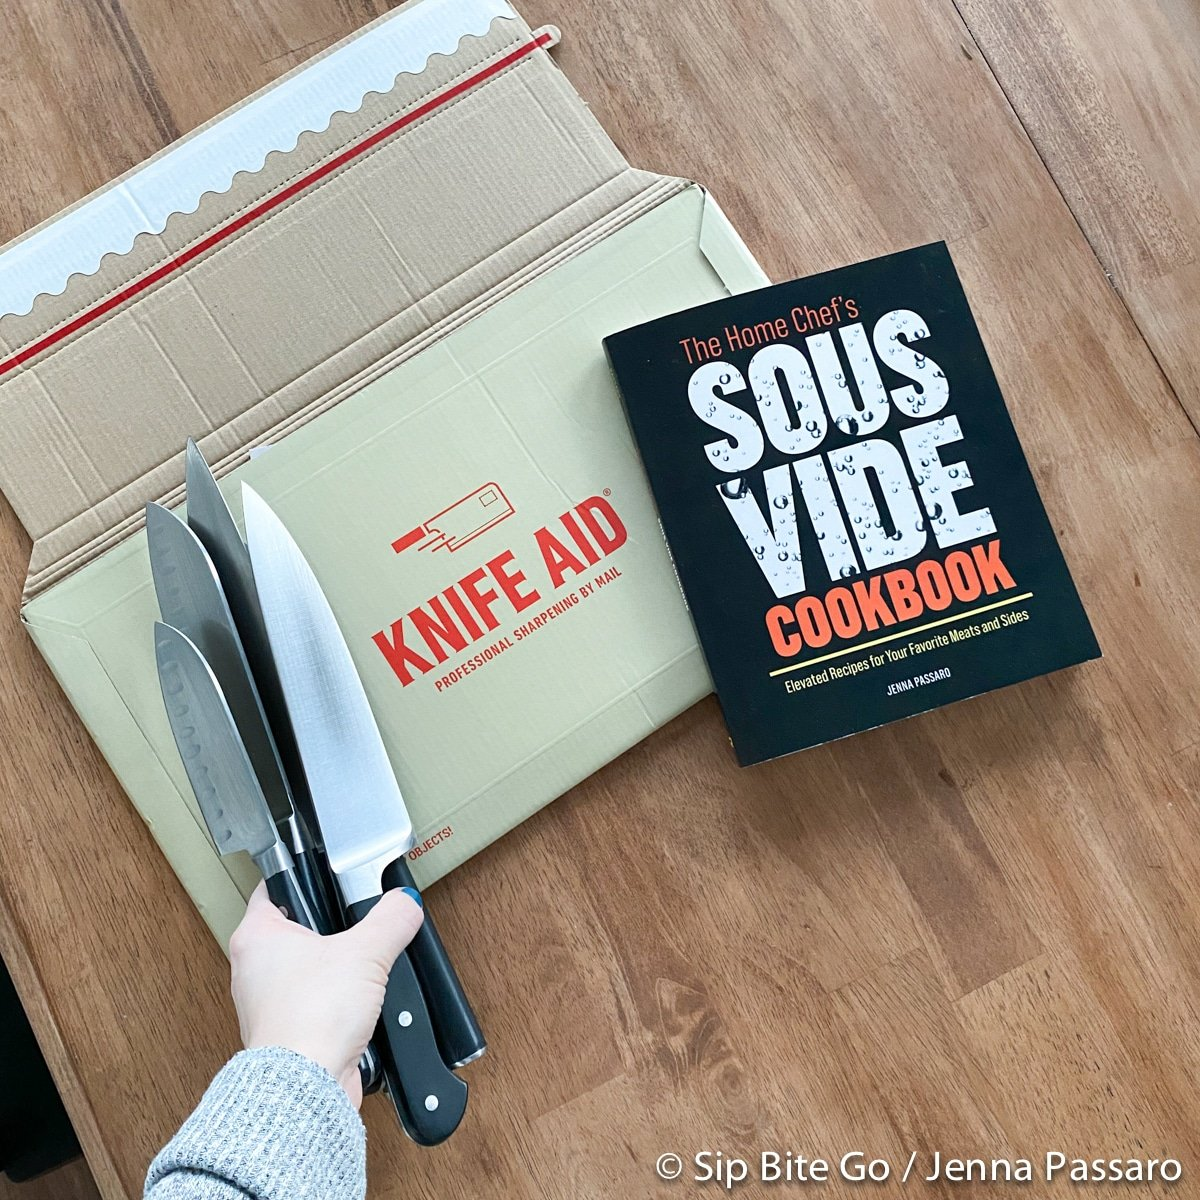 Knife AId box with knives in hand ready to be sharpened with the home chef's sous vide cookbook